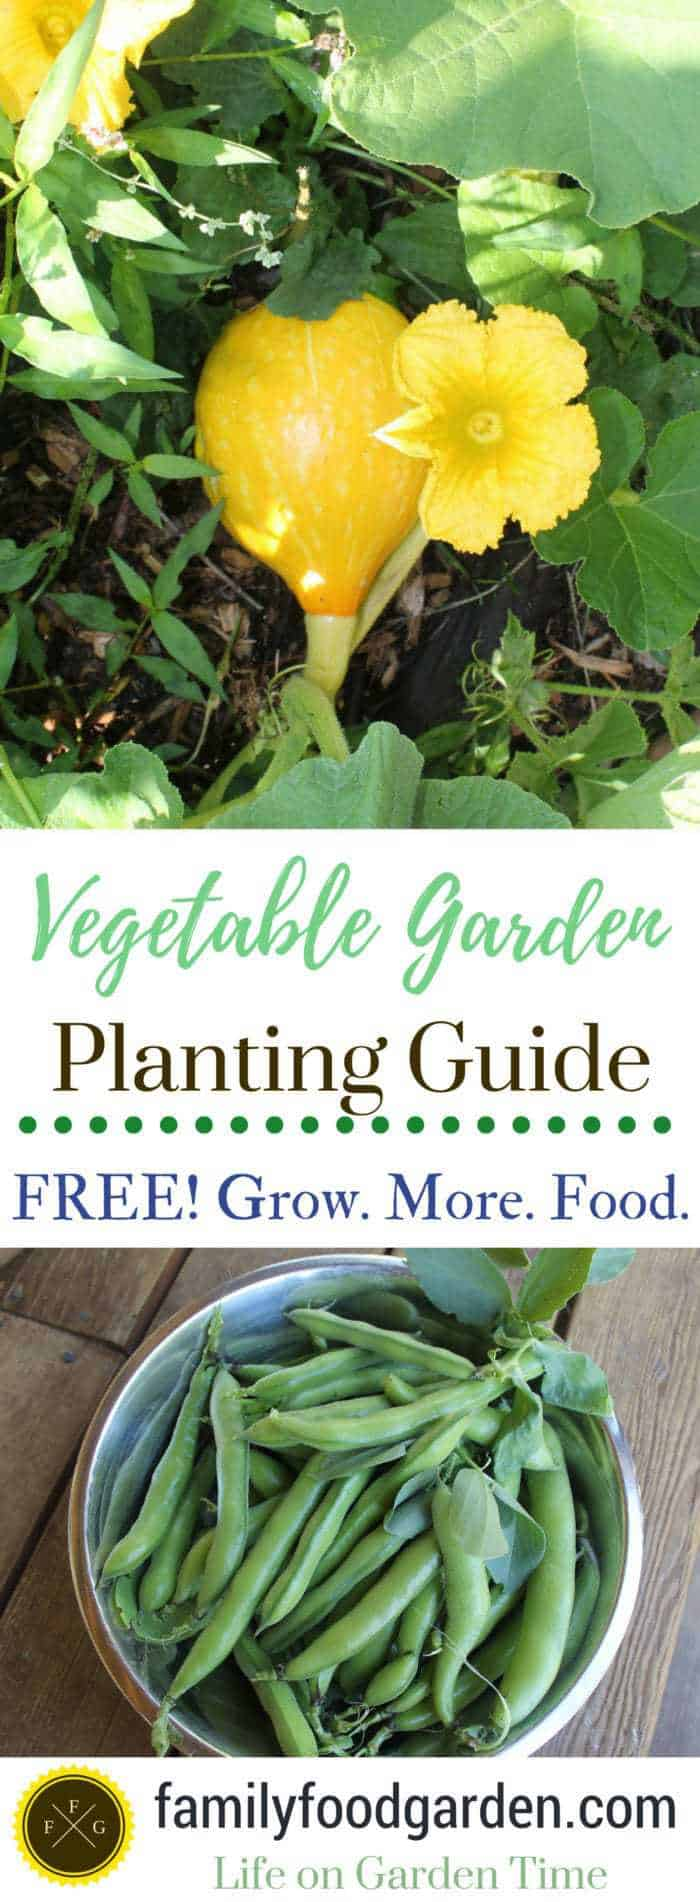 FREE vegetable garden planting guide